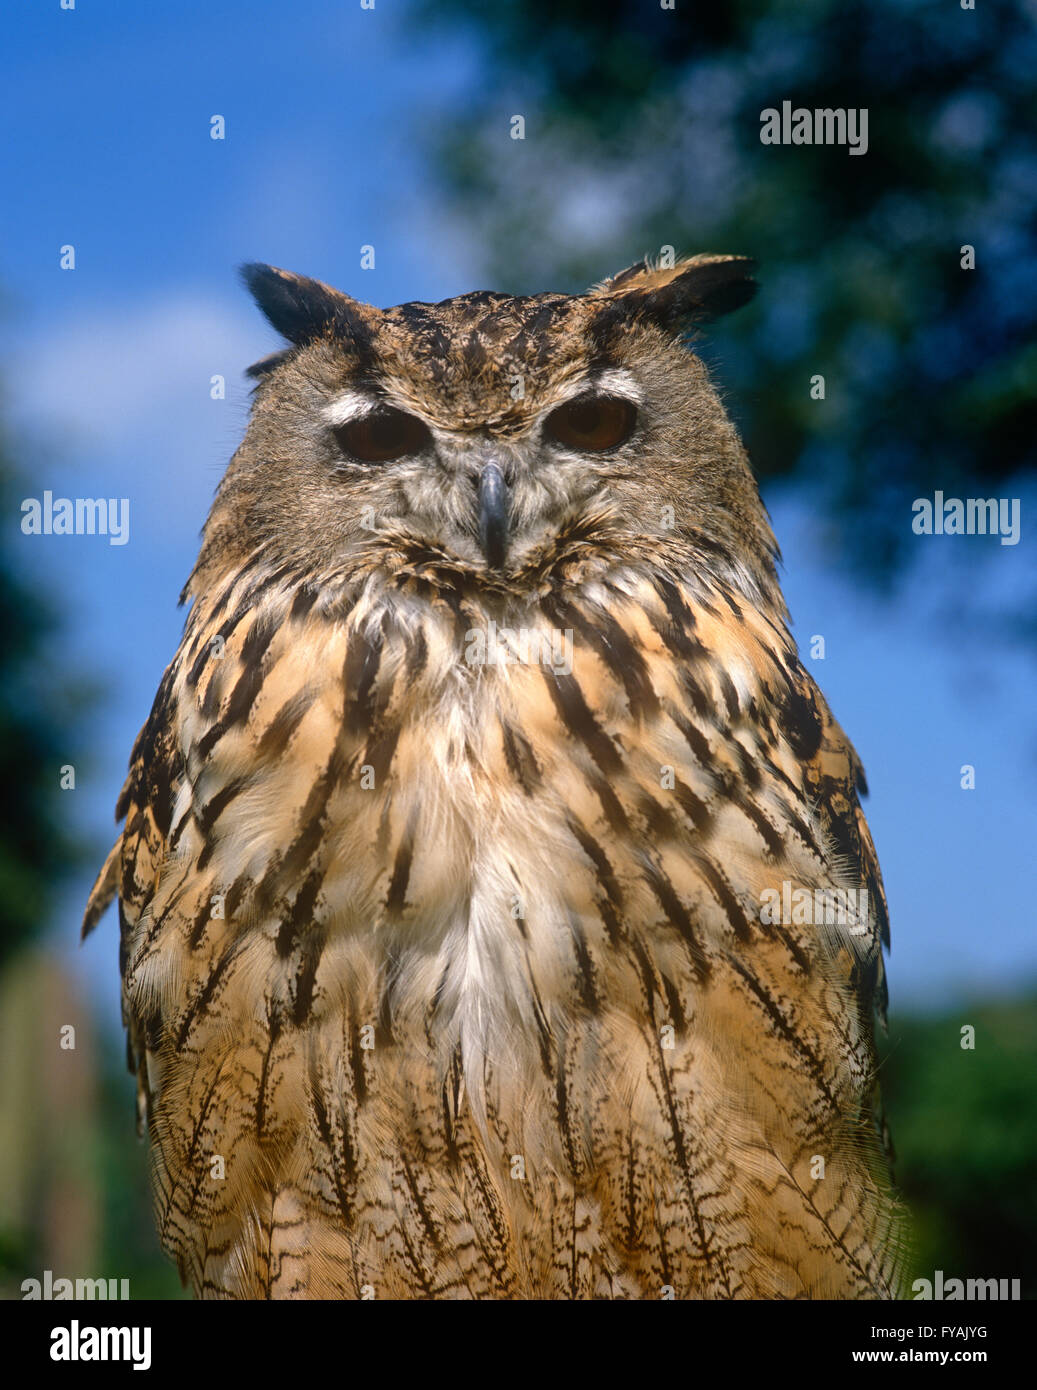 Owl staring into the camera, outside. - Stock Image